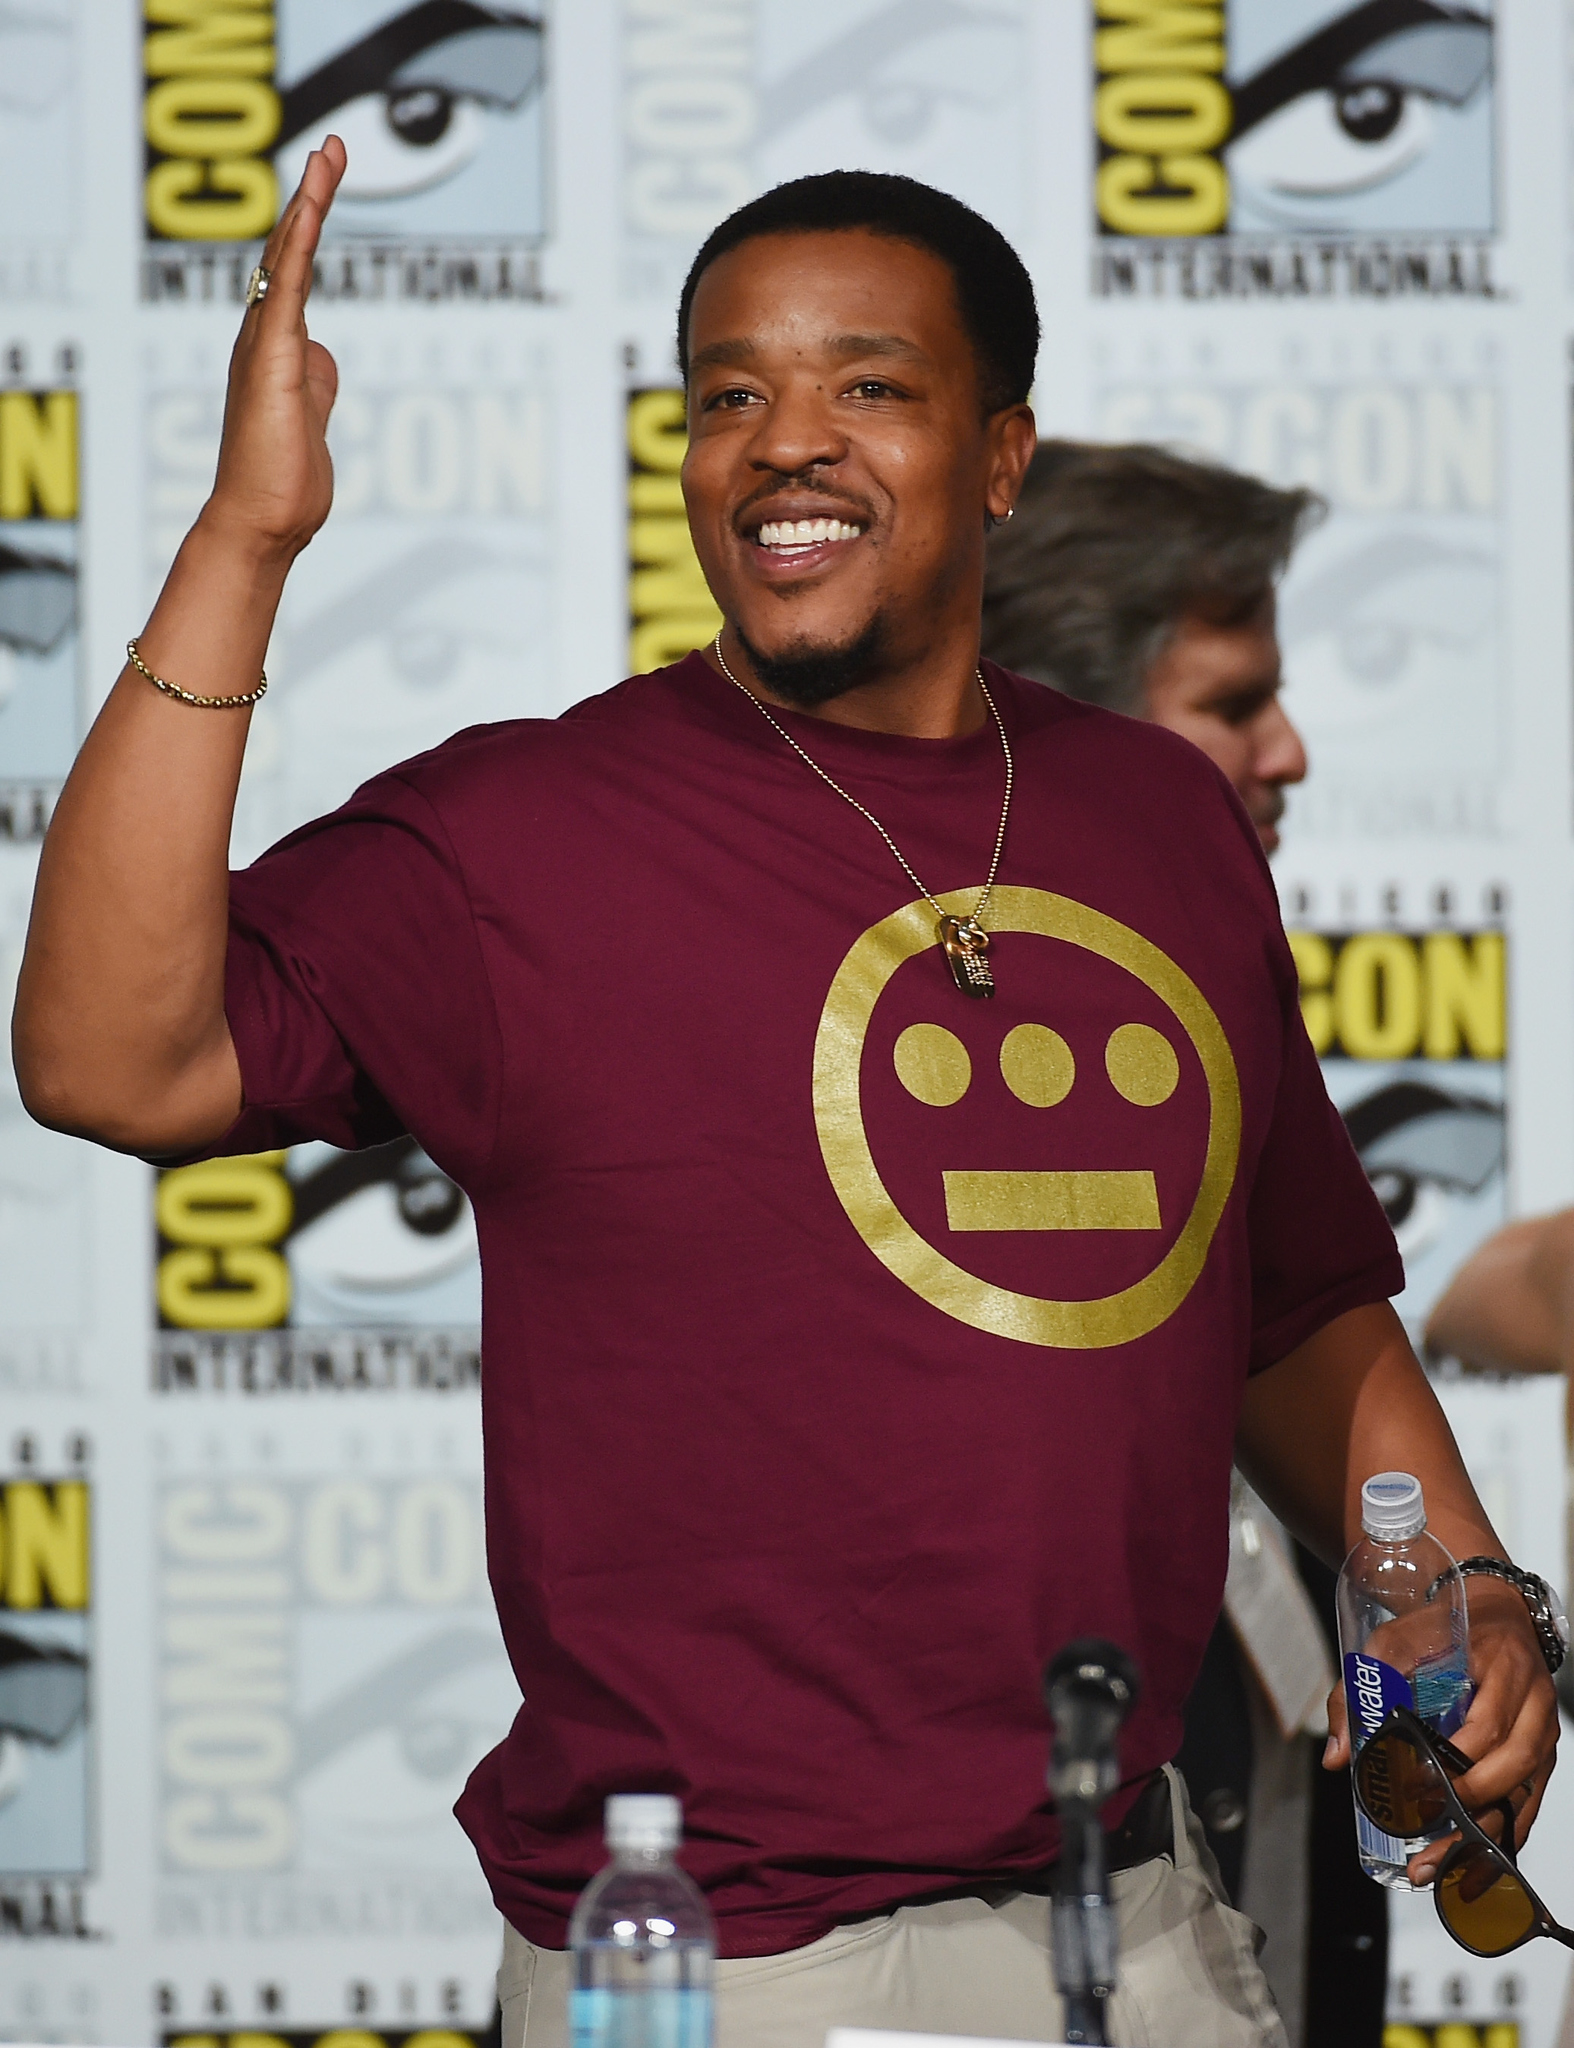 Russell Hornsby at event of Grimm (2011)